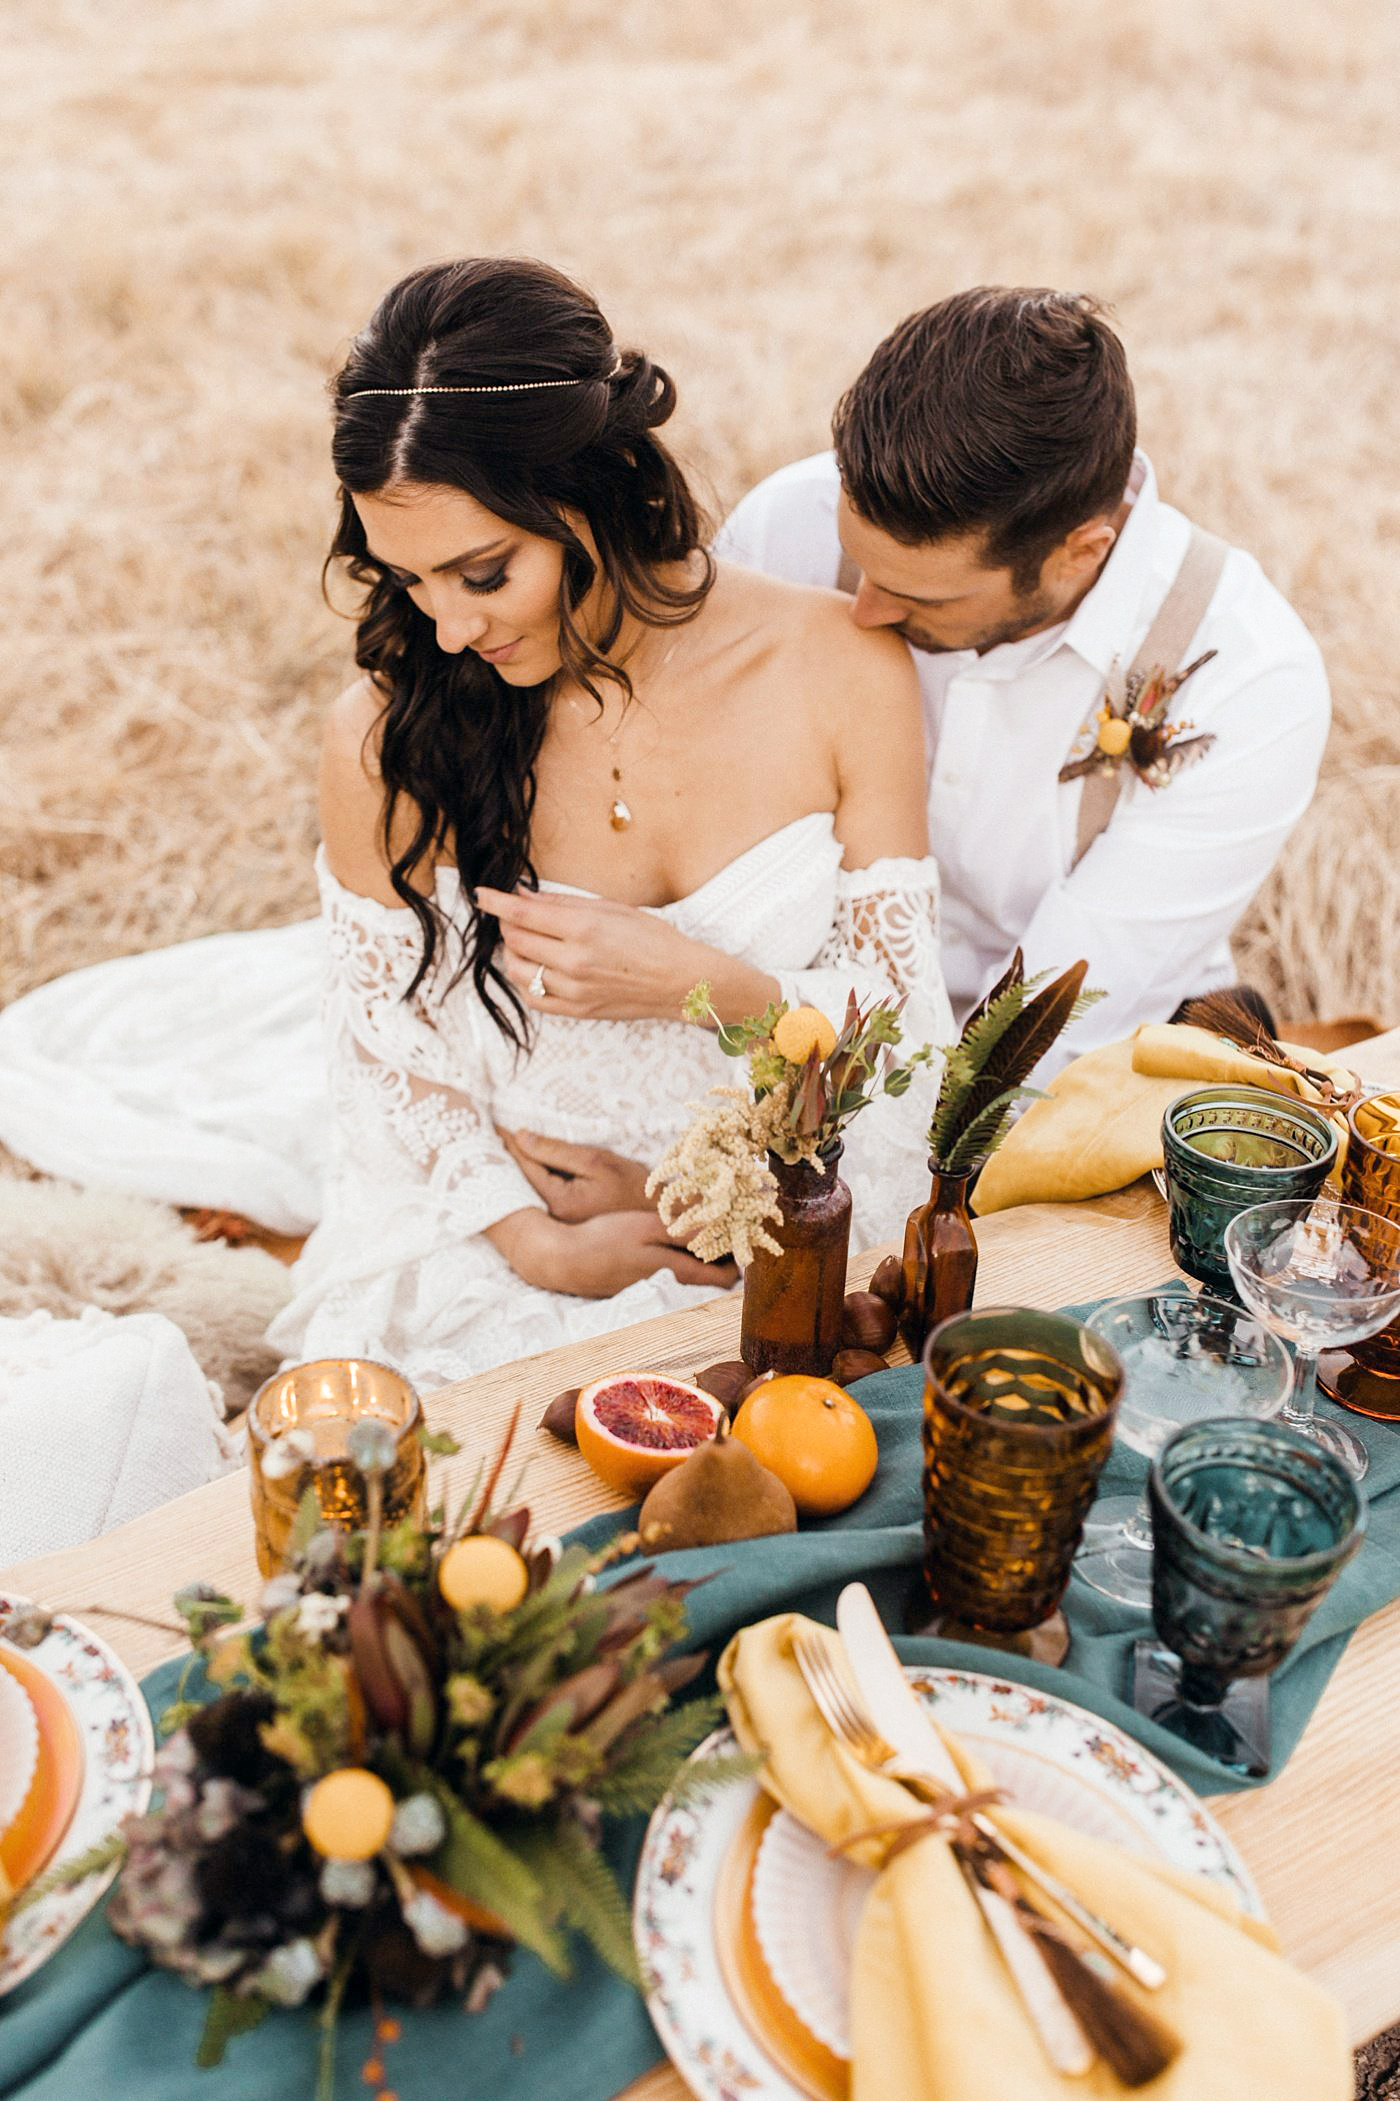 Becca Kufrin Garrett Yrigoyen Pre-Wedding Shoot - The Bachelor Nation fan-favorites sat with their arms wrapped around each other next to a chic Lucky Burro tabletop and a cake made by Delicious Designs .